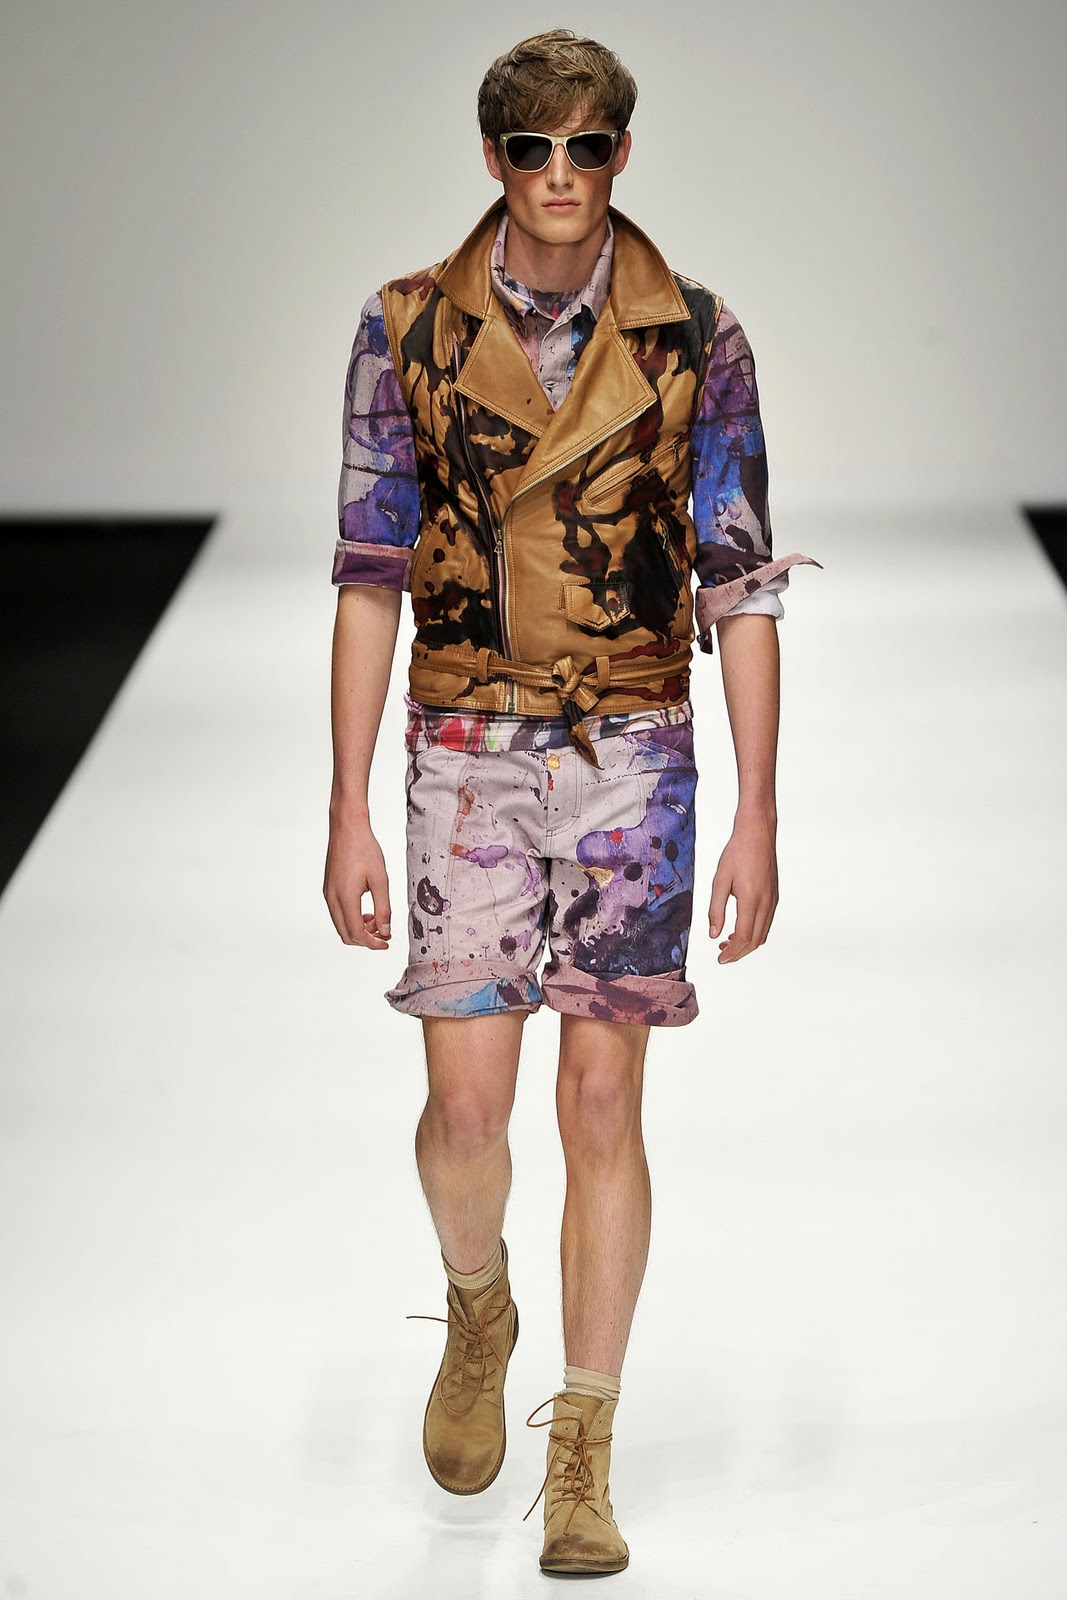 There 39s Always something refreshing to look at this London Fashion Week